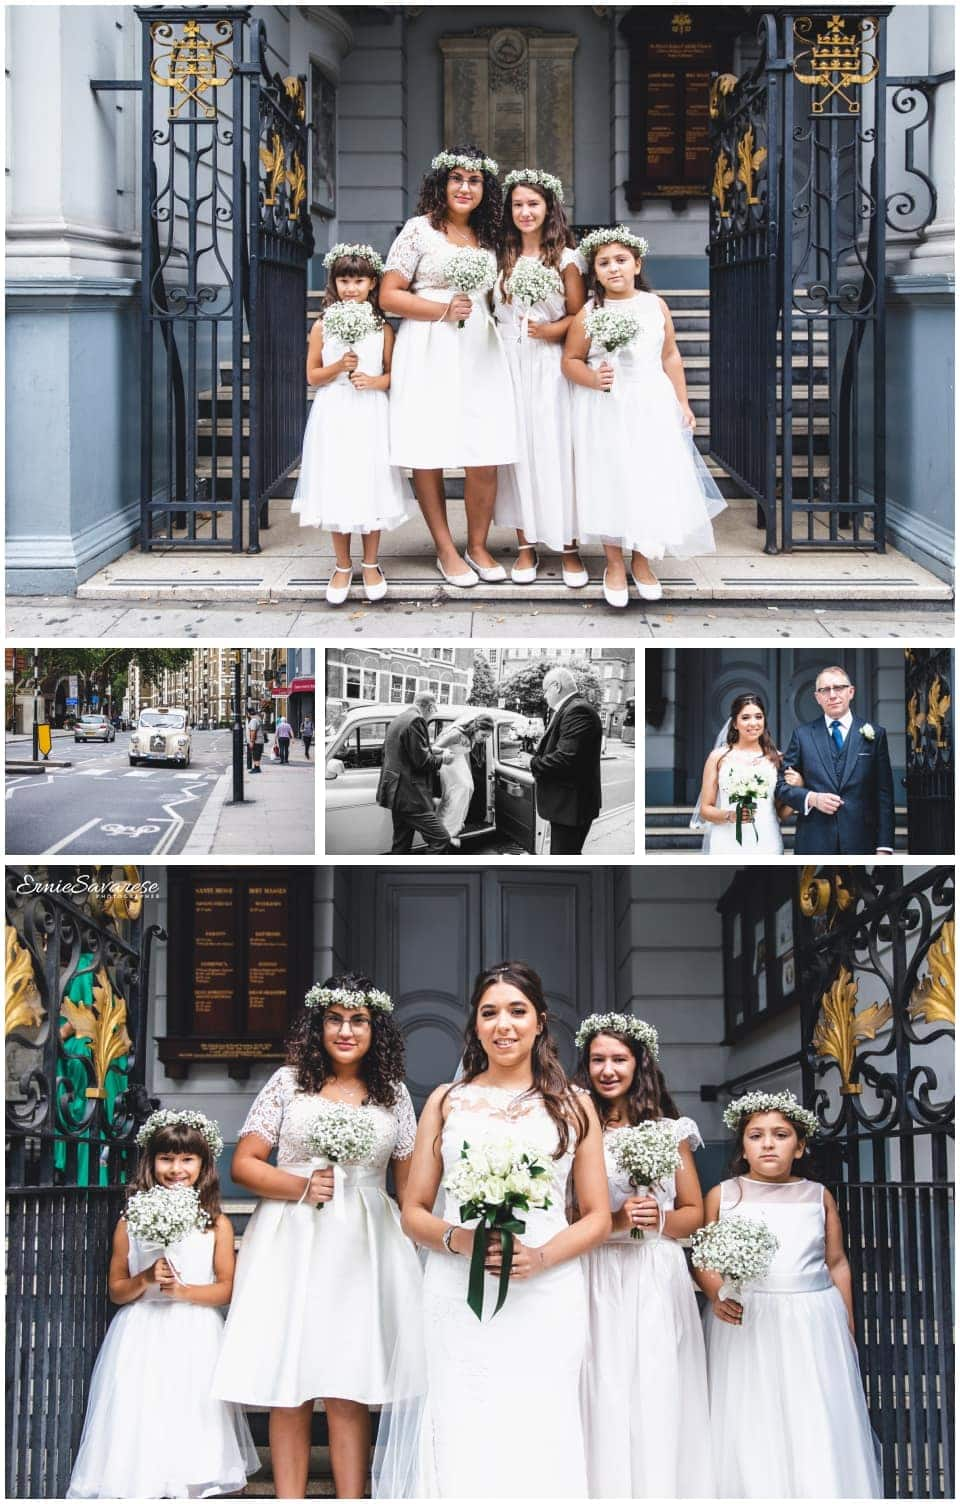 St Peter's Italian Church Wedding Photographer London